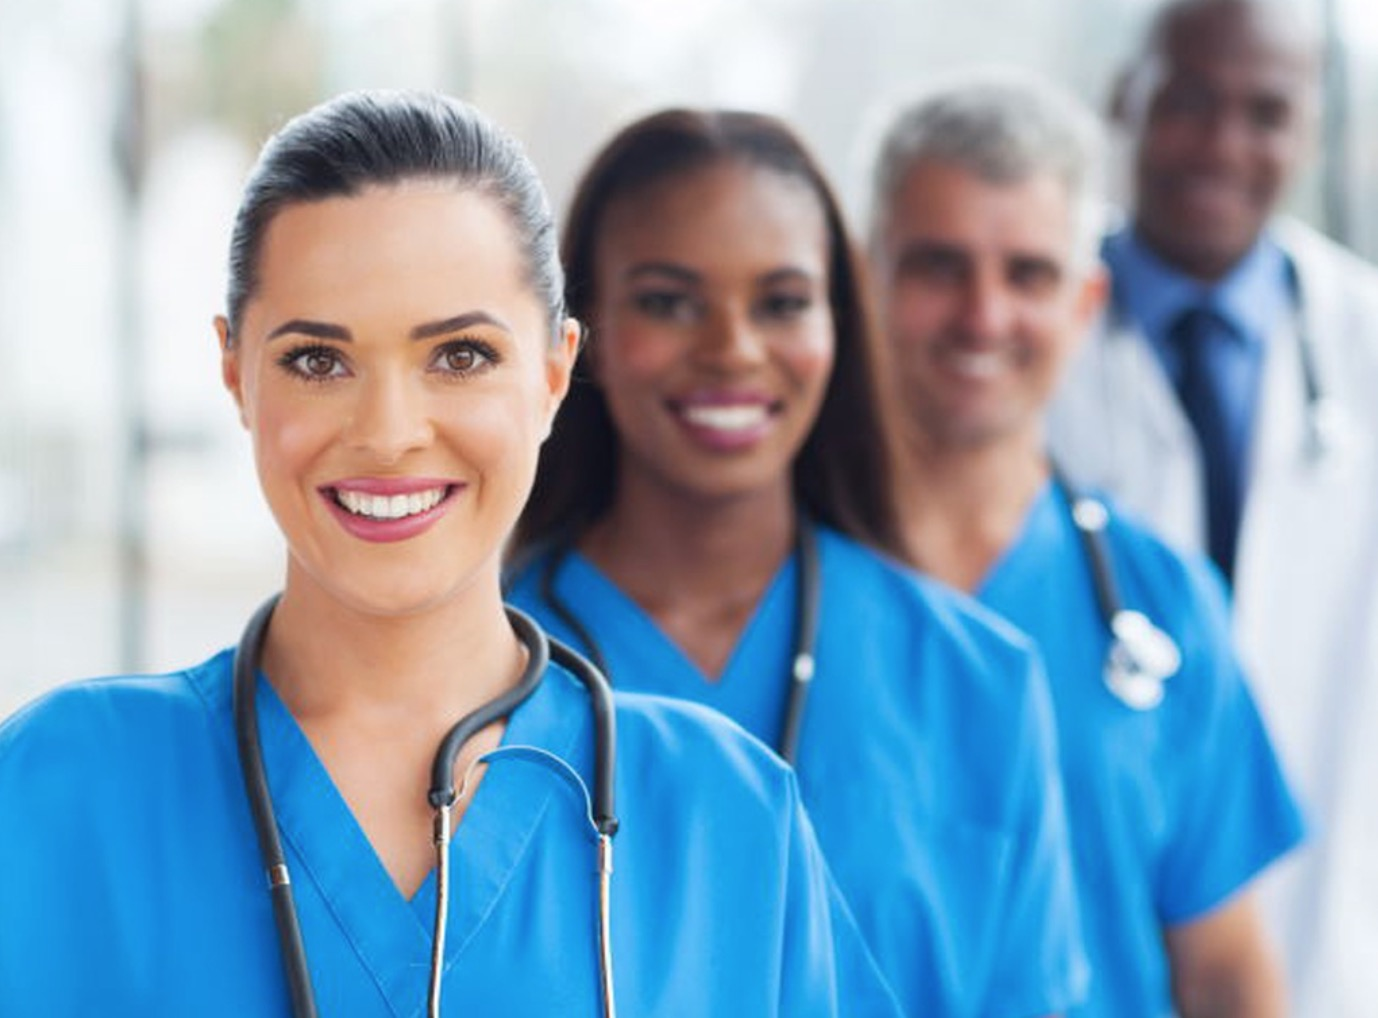 It's time for Florida to untie the hands of advanced practice registered nurses